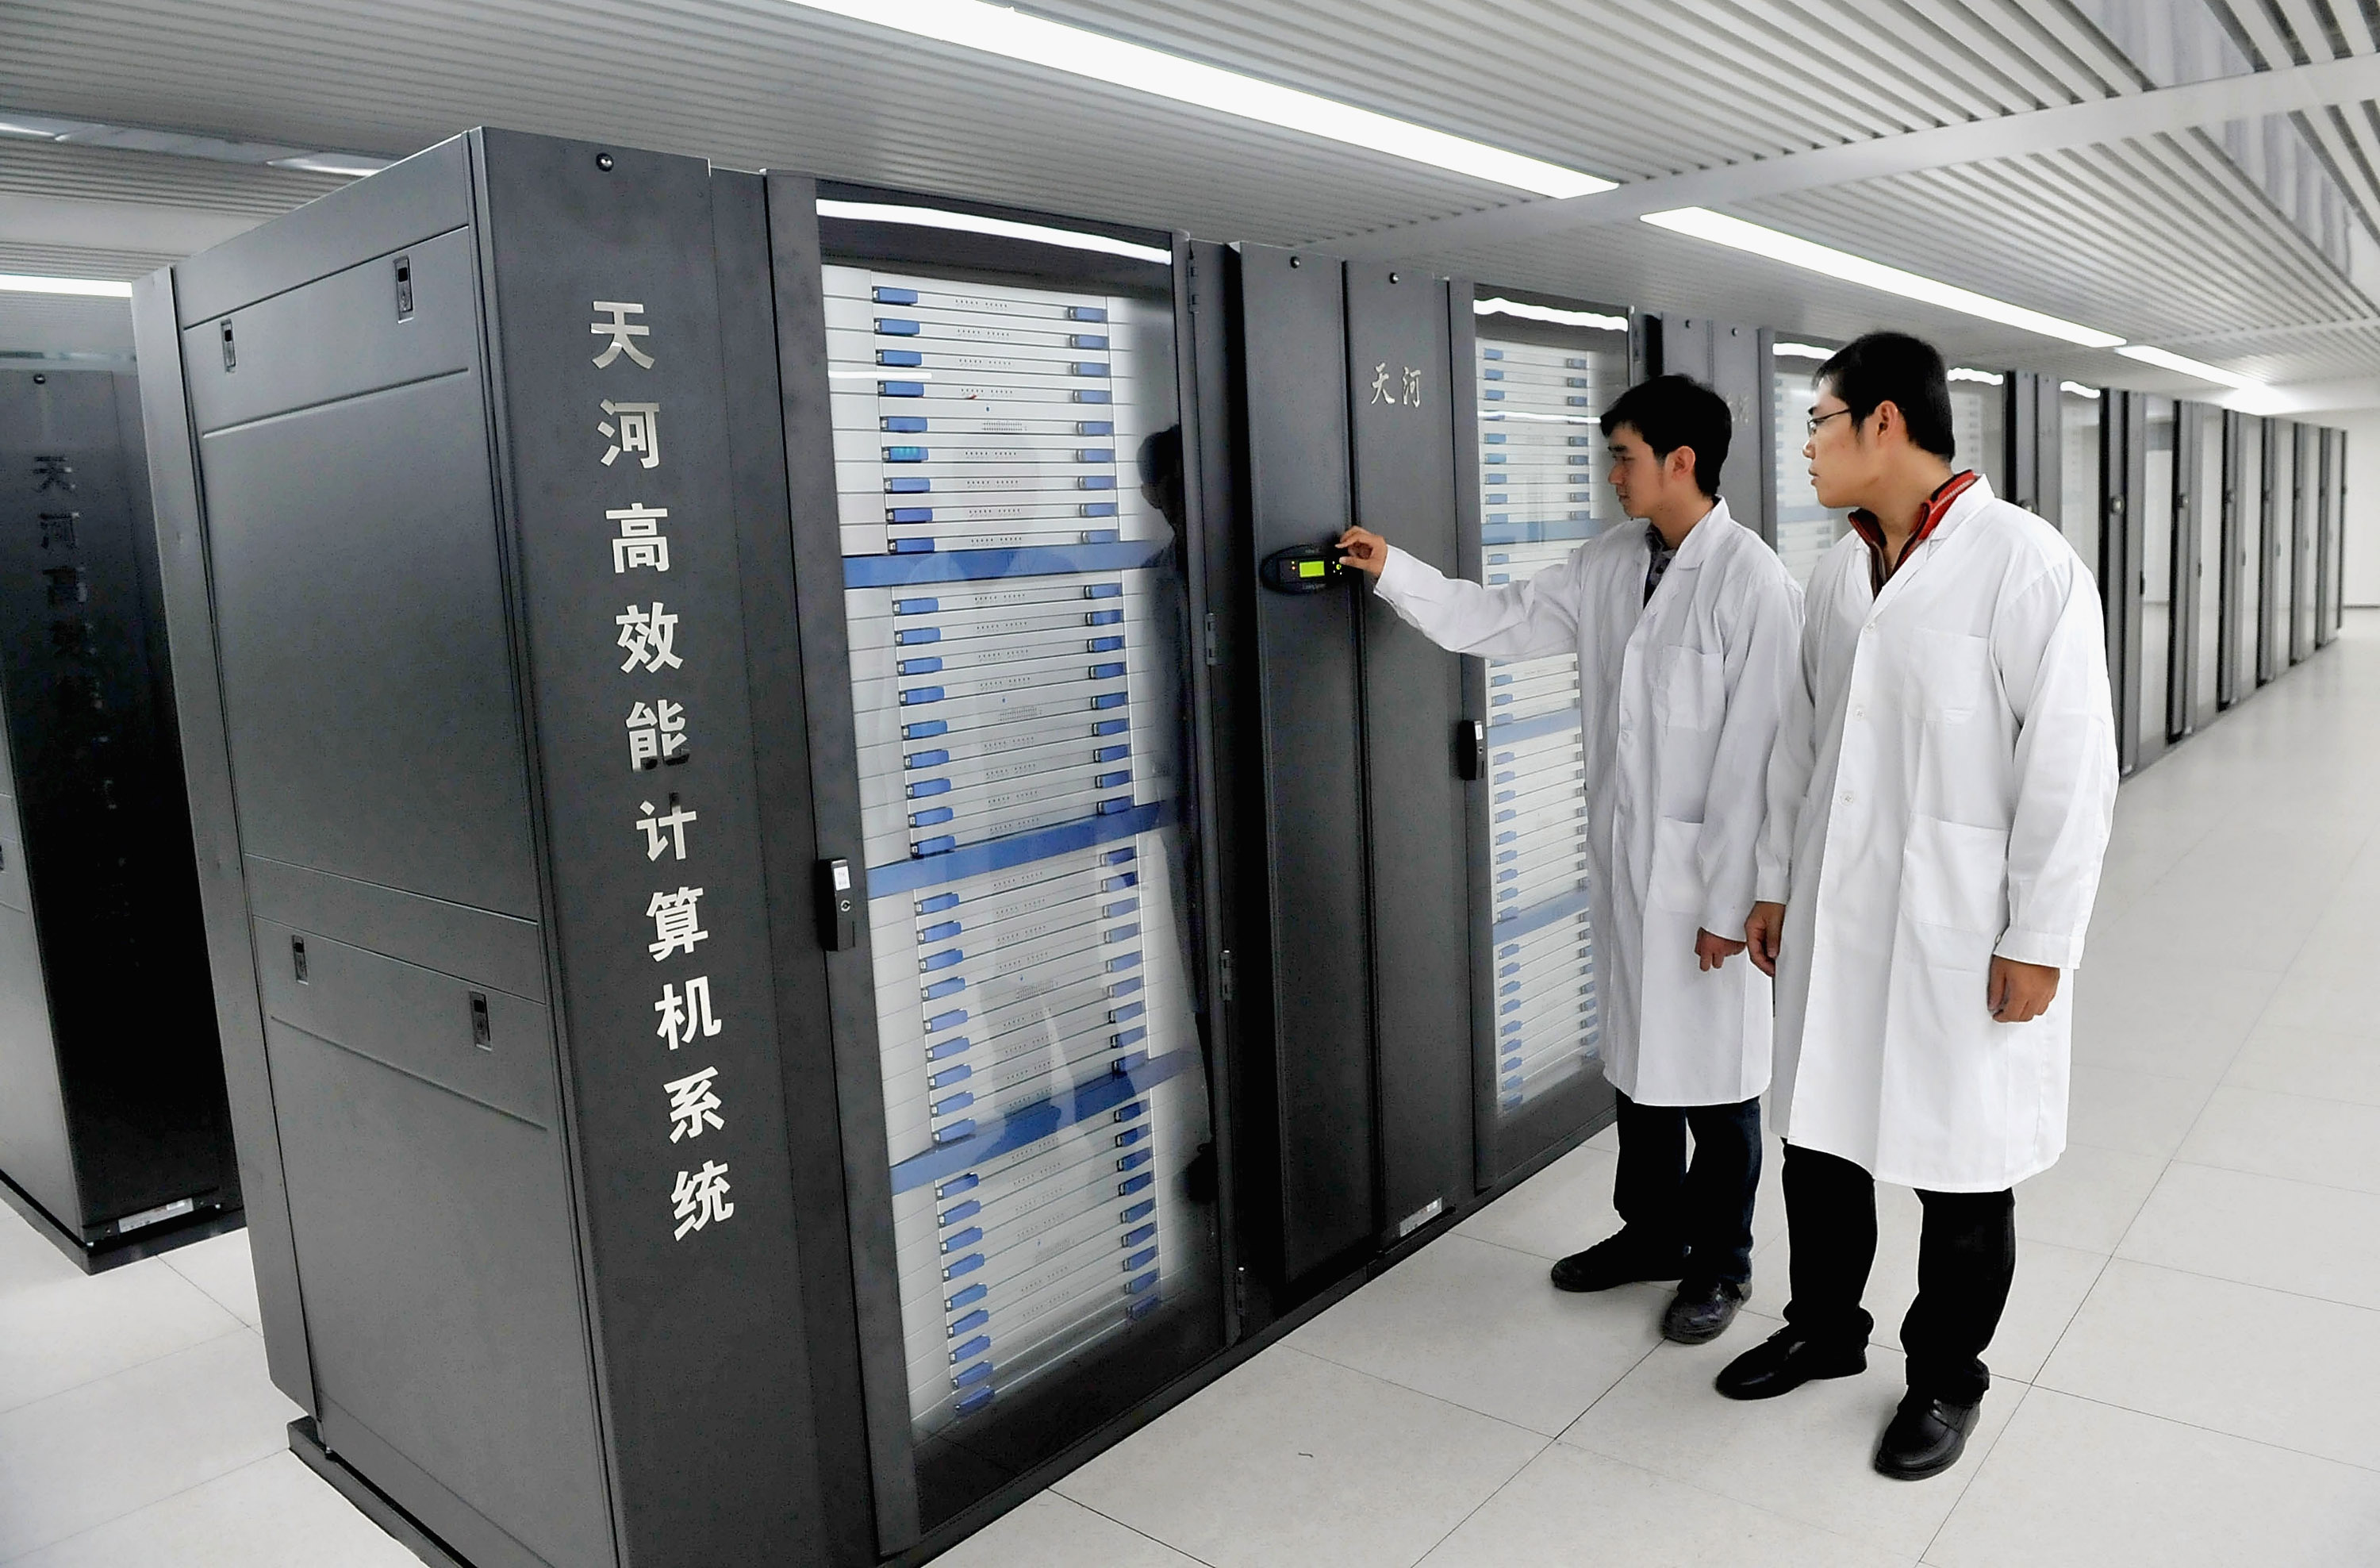 China's Supercomputer 'Tianhe-1' Creates New Speed Record